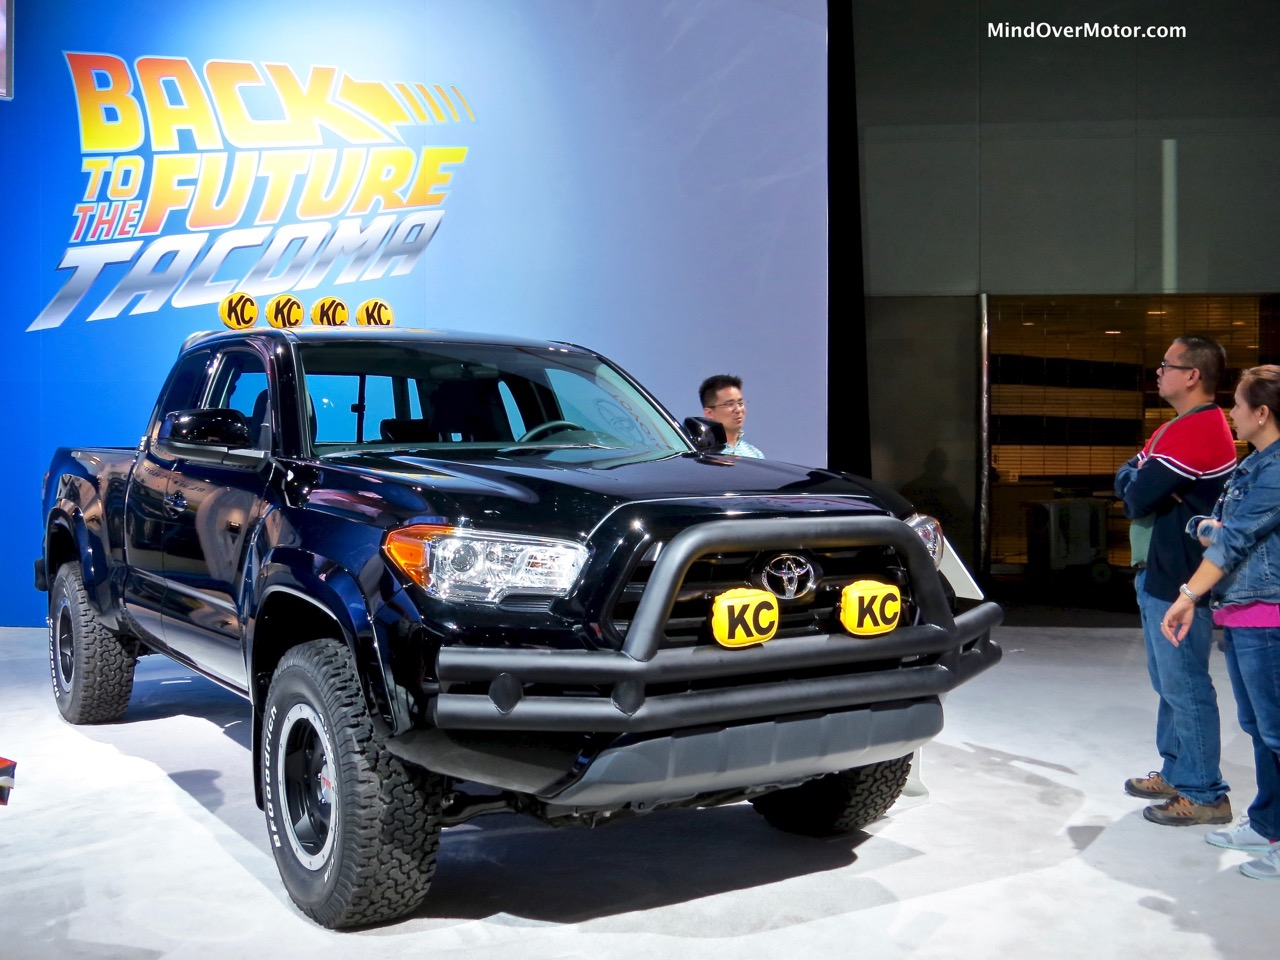 Back to the Future Tacoma SR5 Front Right